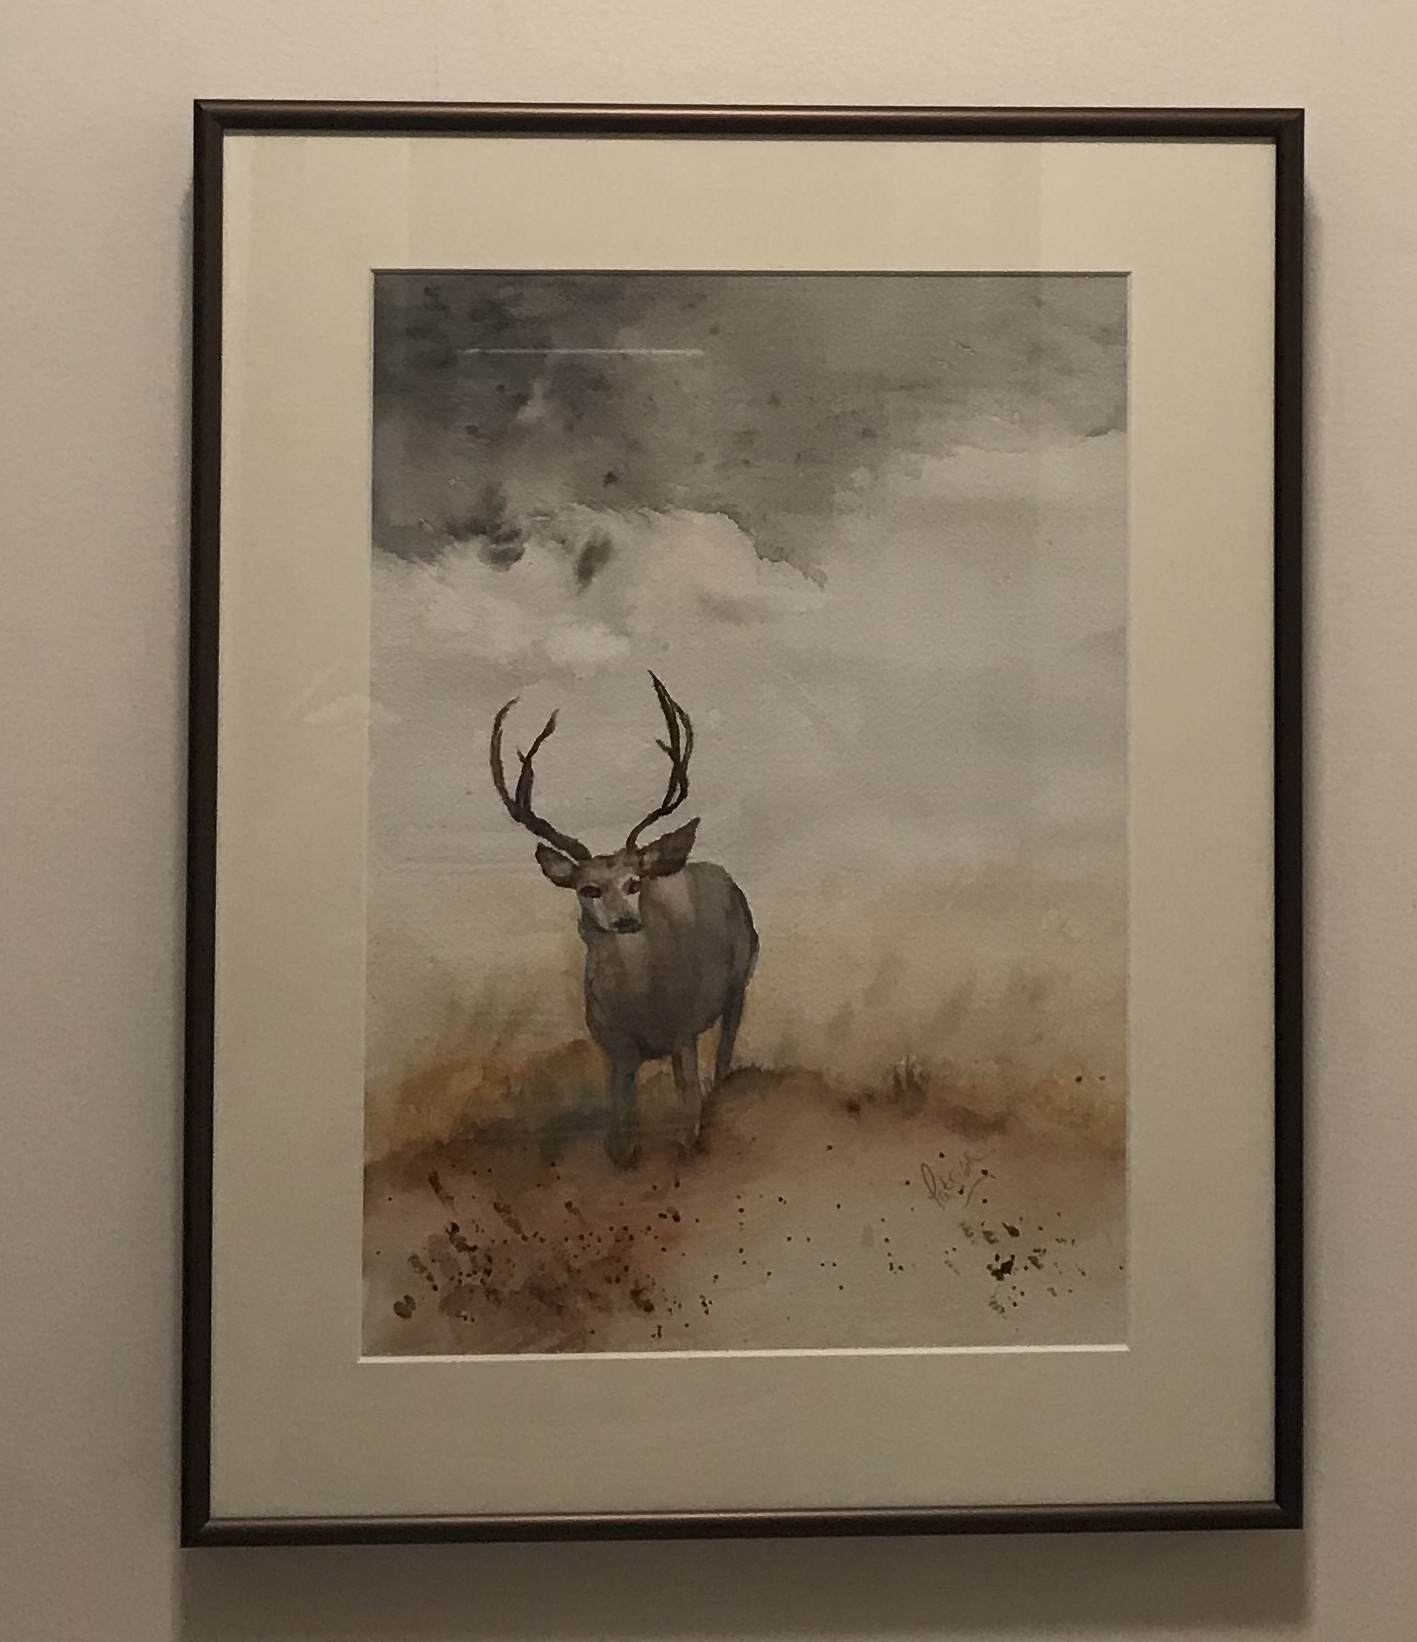 Deer on a Stormy Day